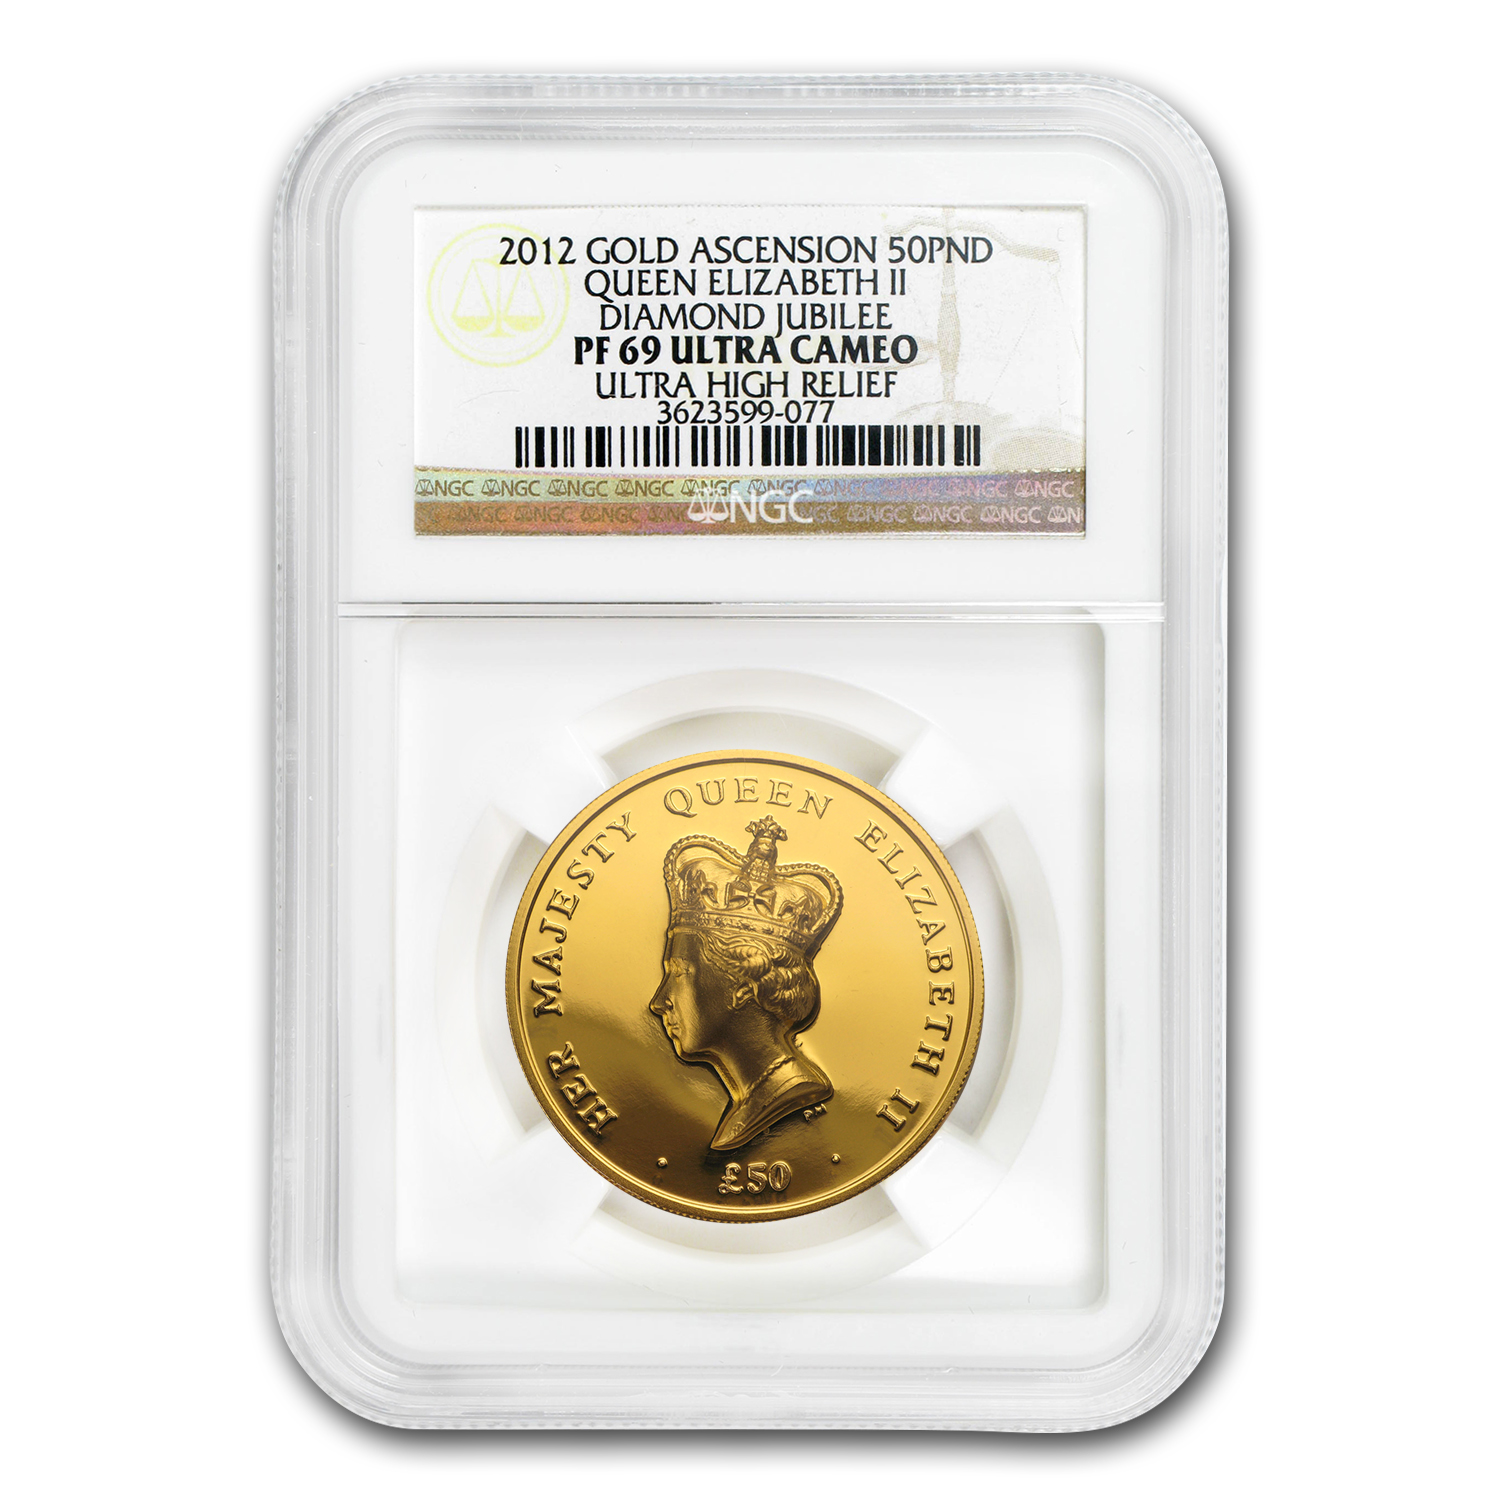 2012 Ascension Island Gold £50 PF-69 NGC (Ultra High Relief)